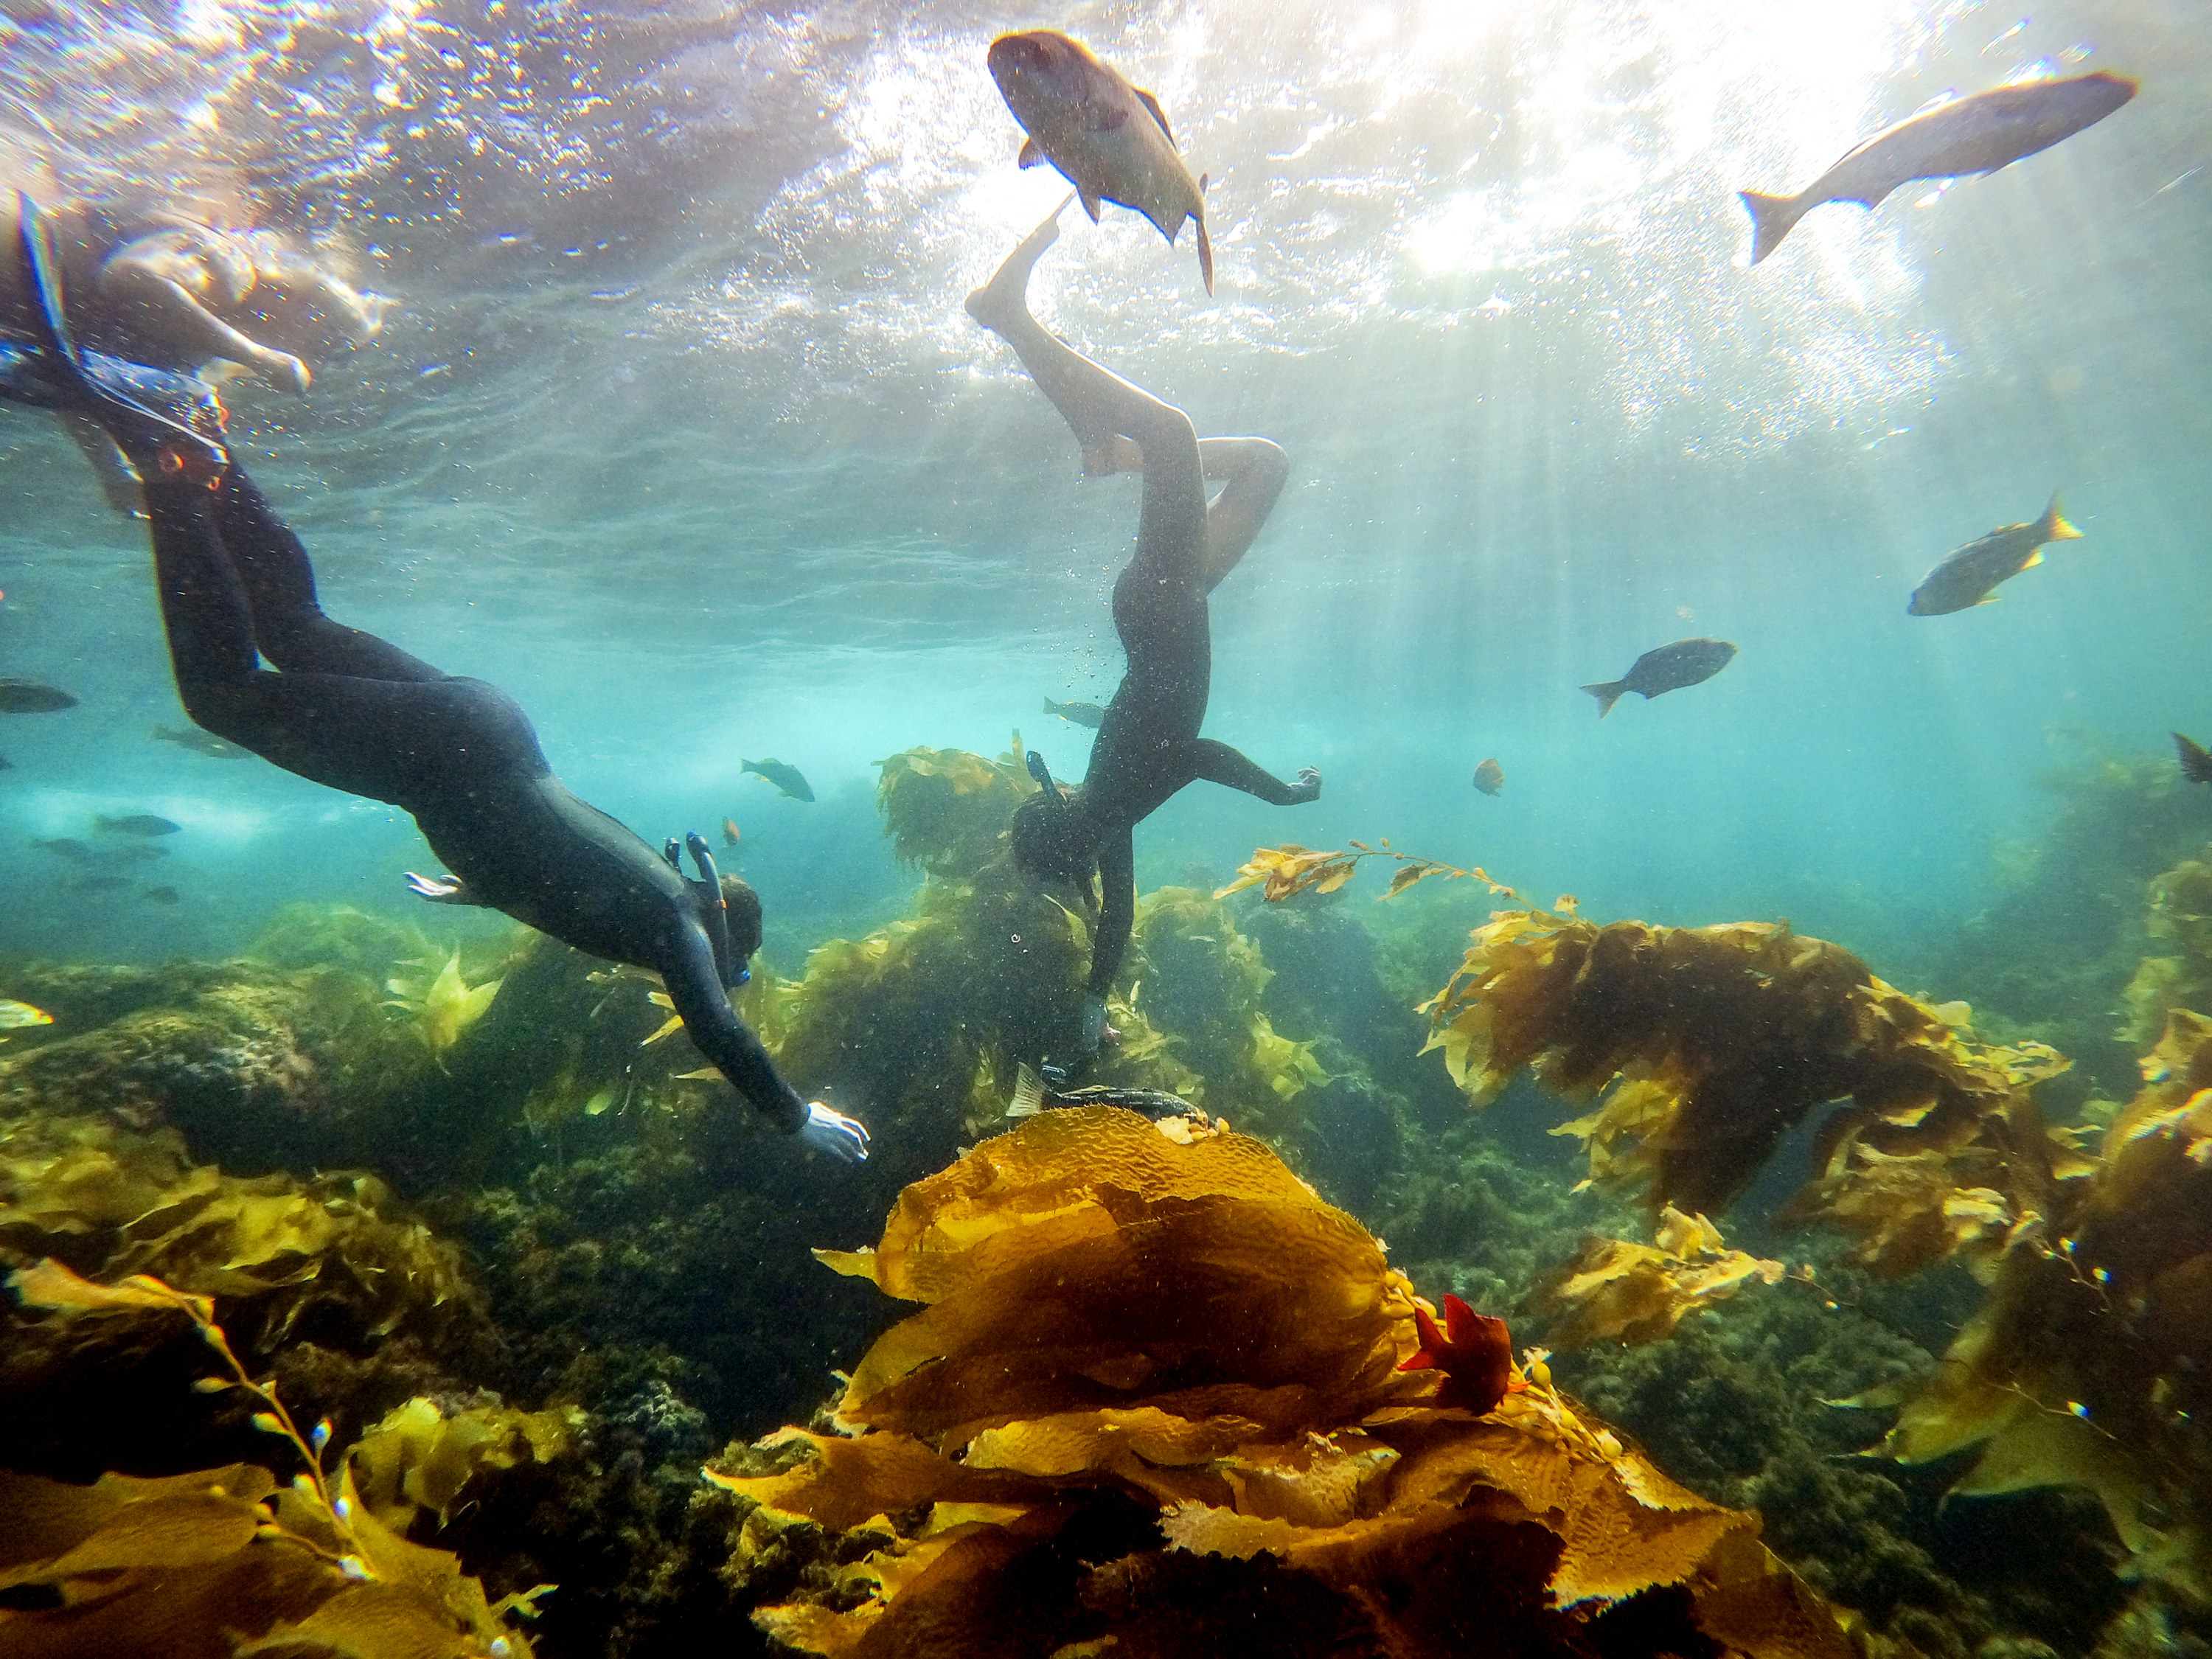 Snorkelers and fish swim in the water